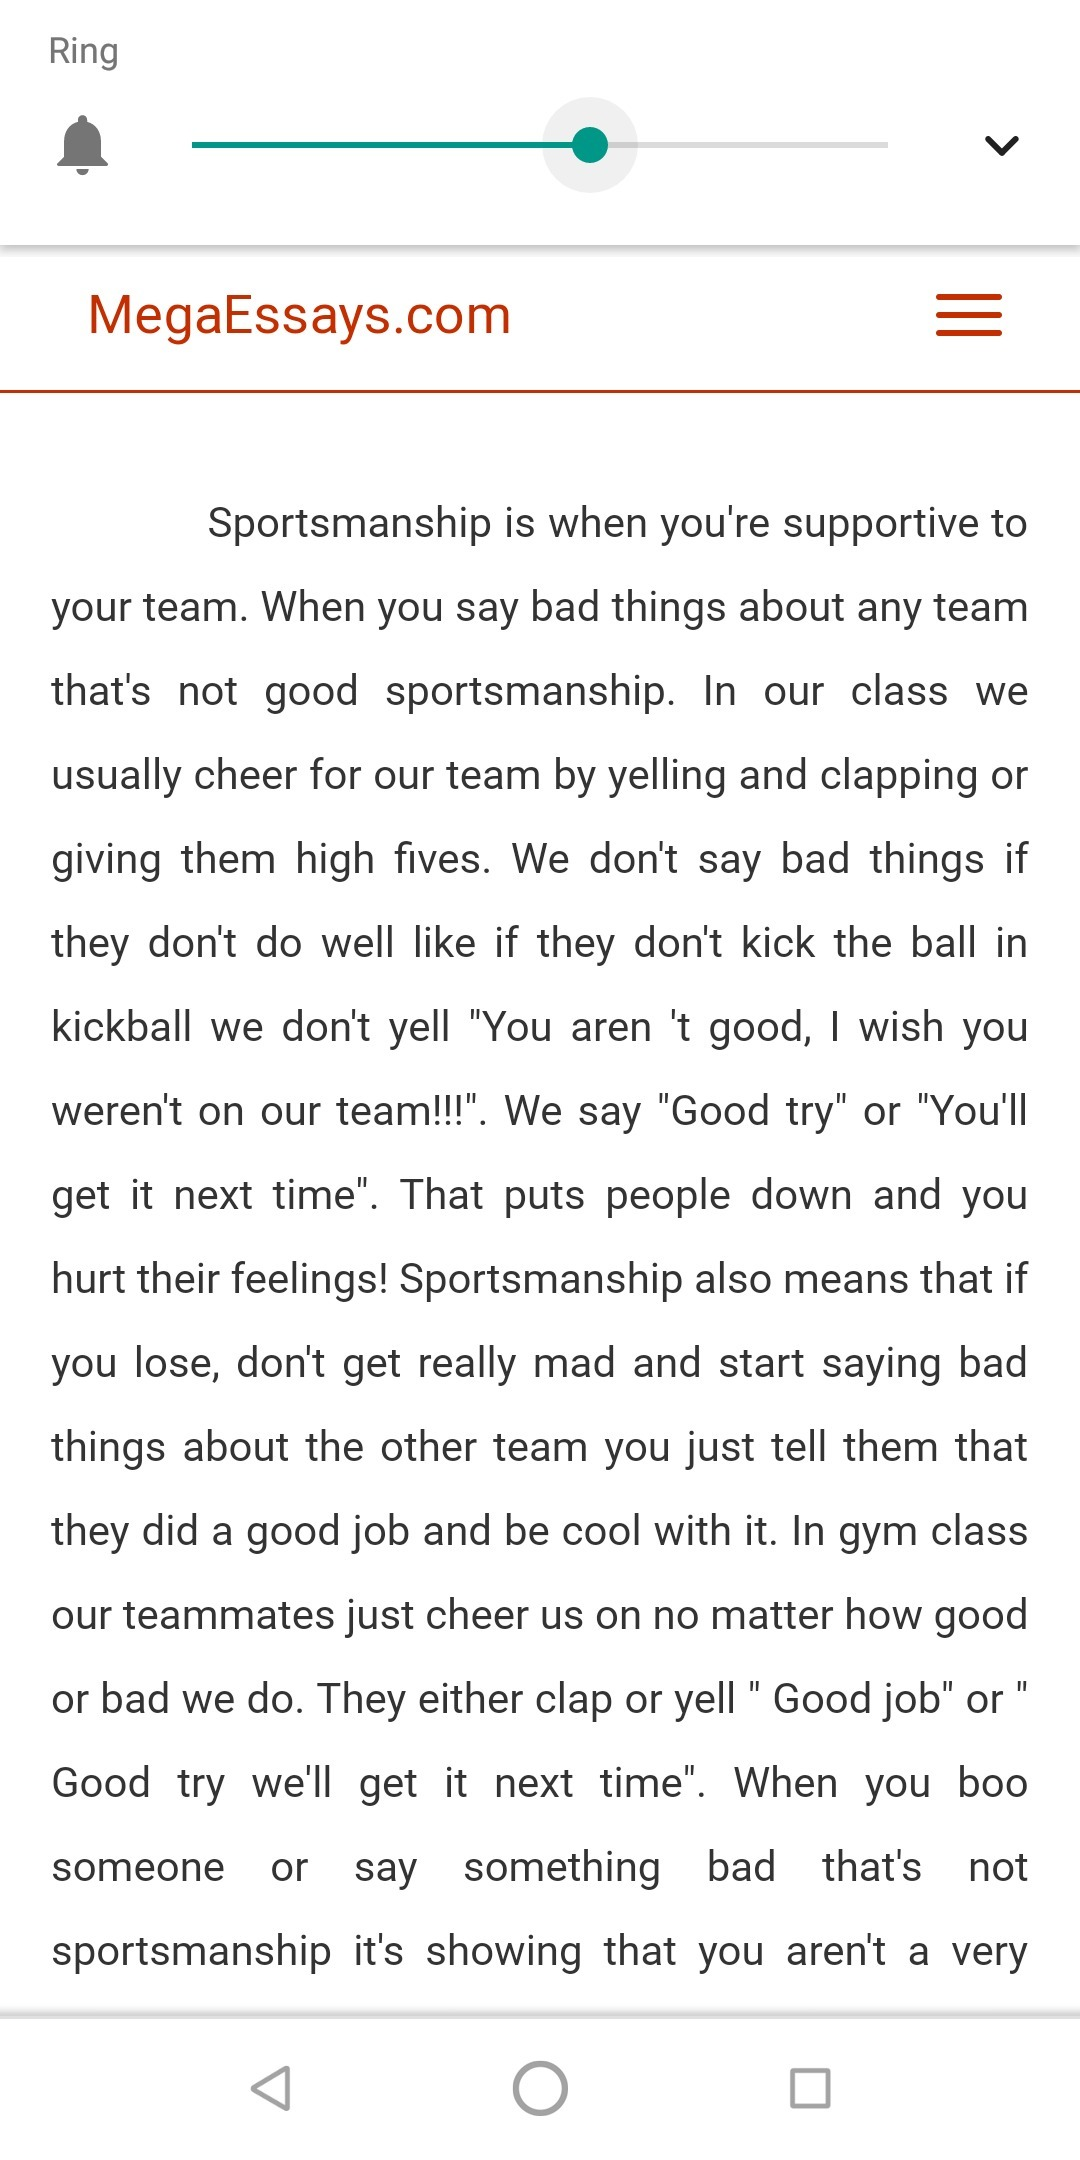 Very short essay on sports and sportsmanship